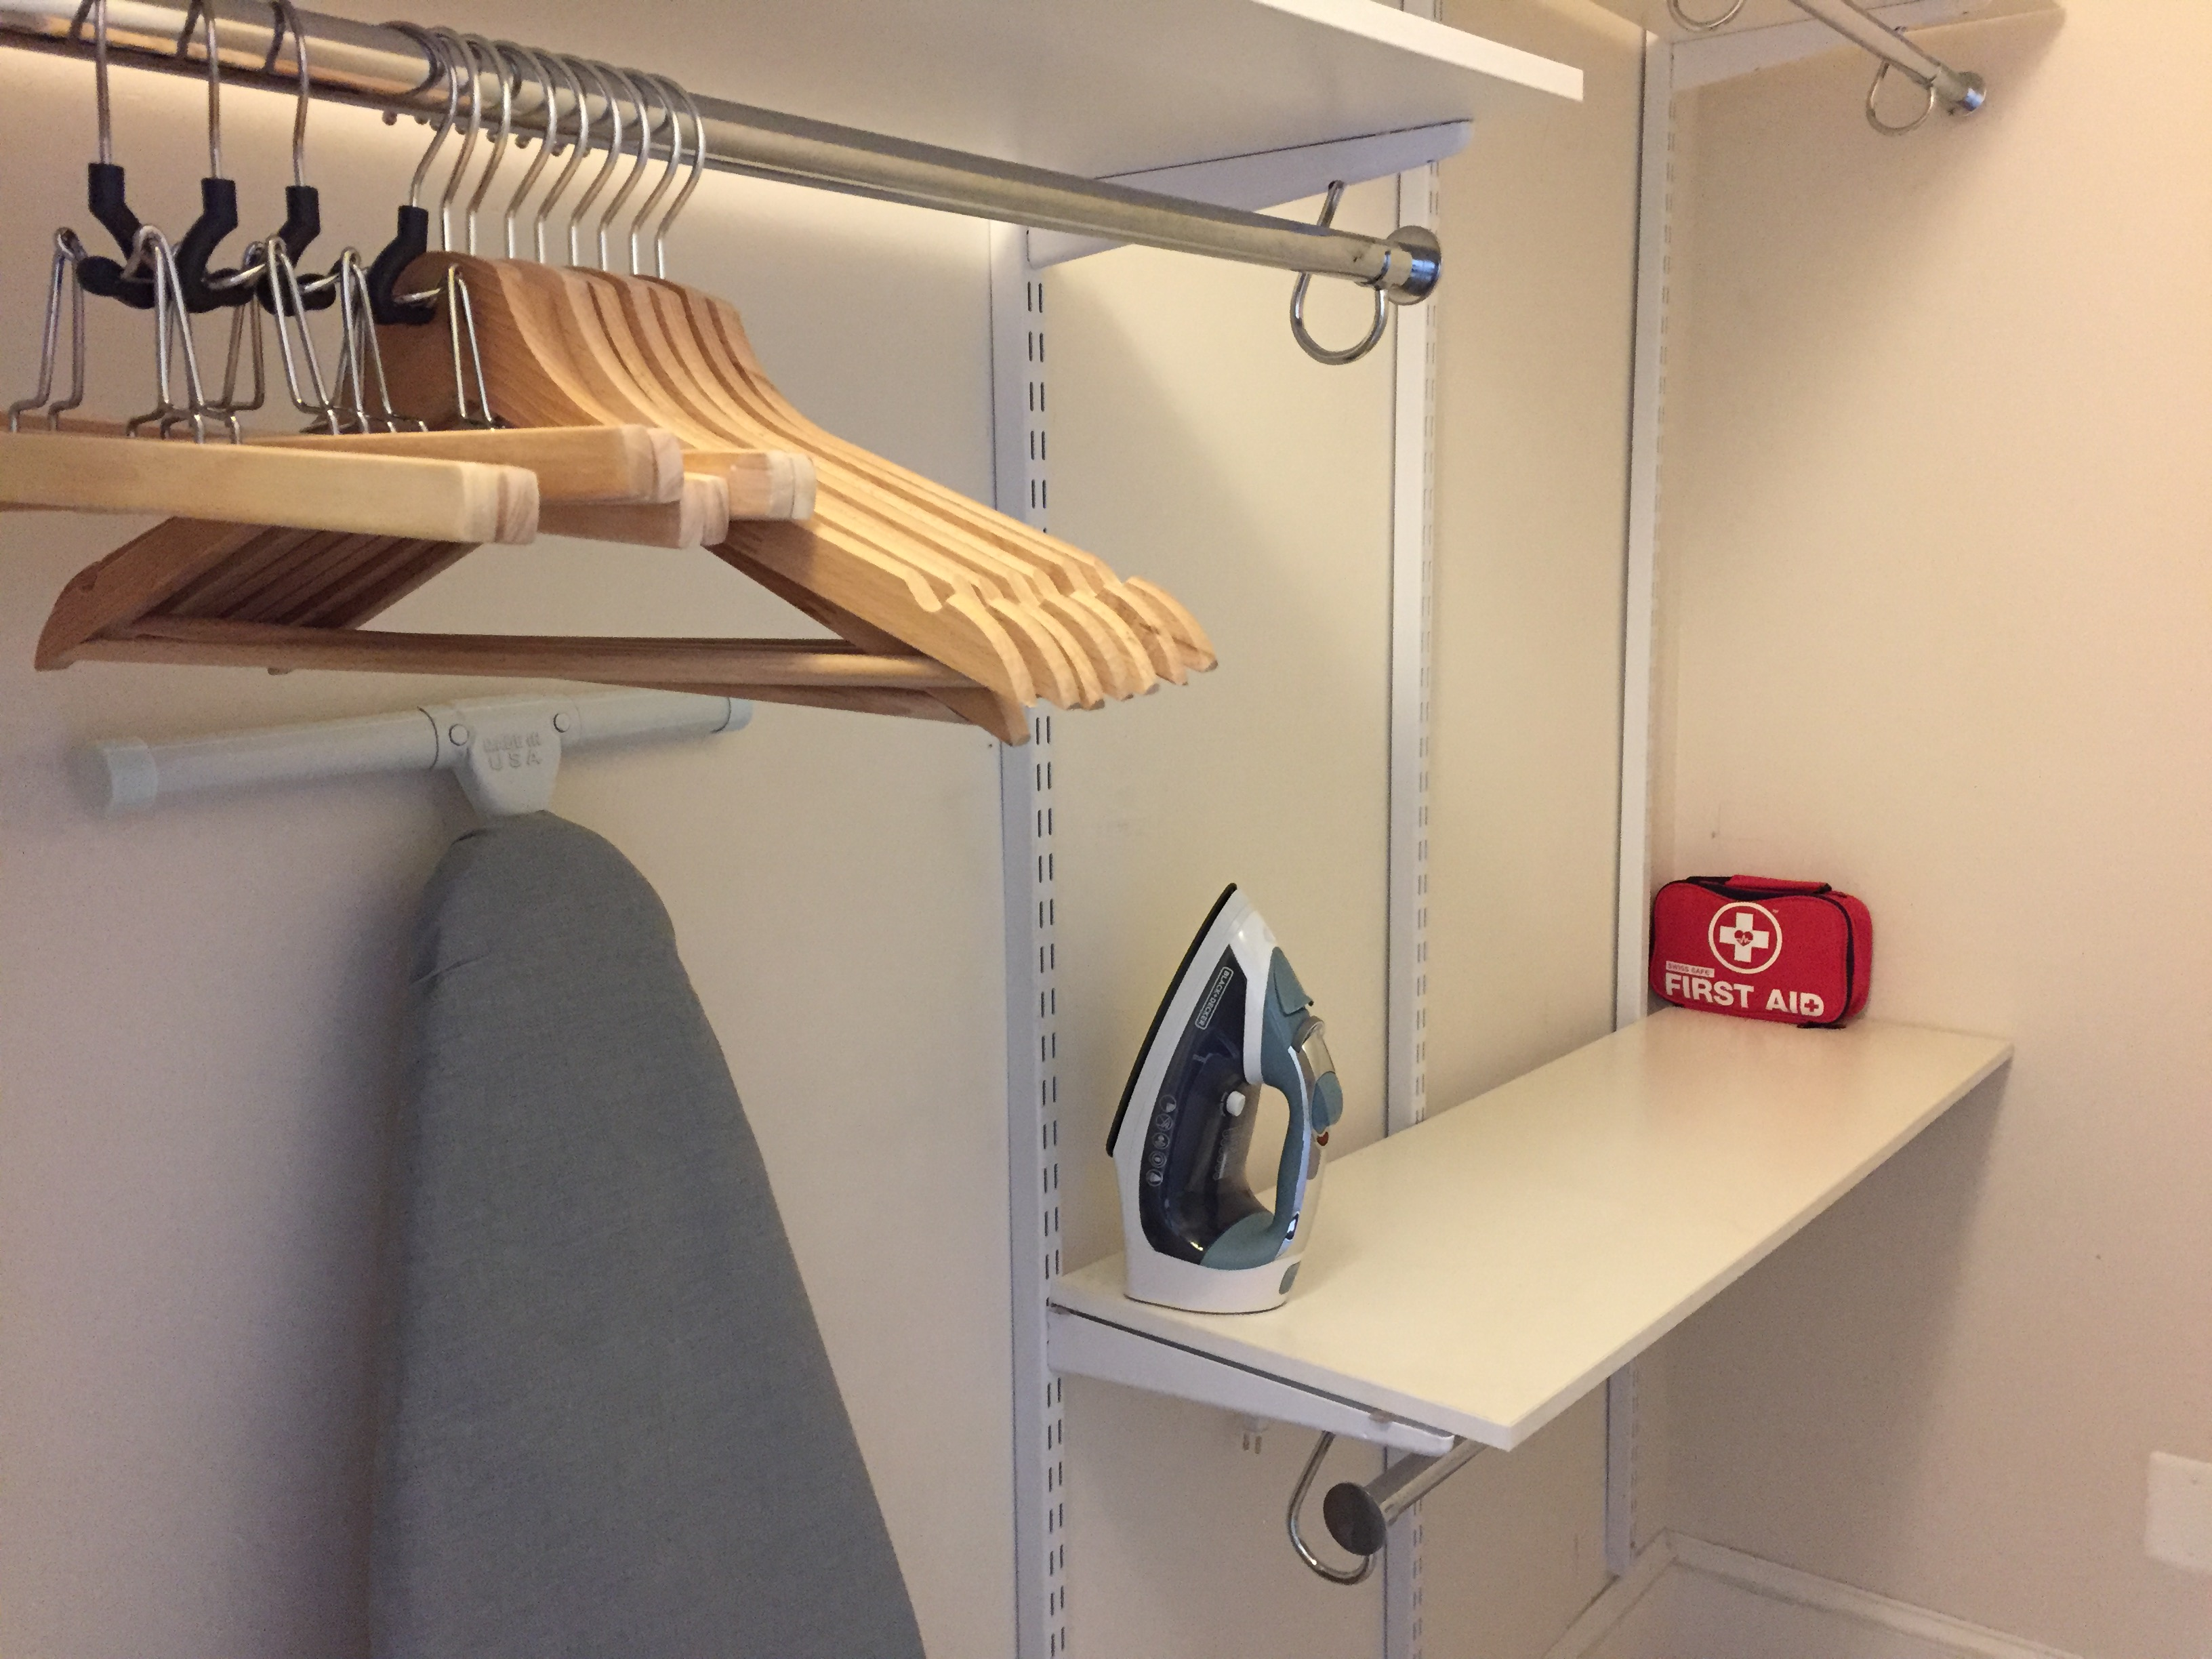 Walk-in closet in Master bedroom with hangers, iron, ironing board and first-aid kit.